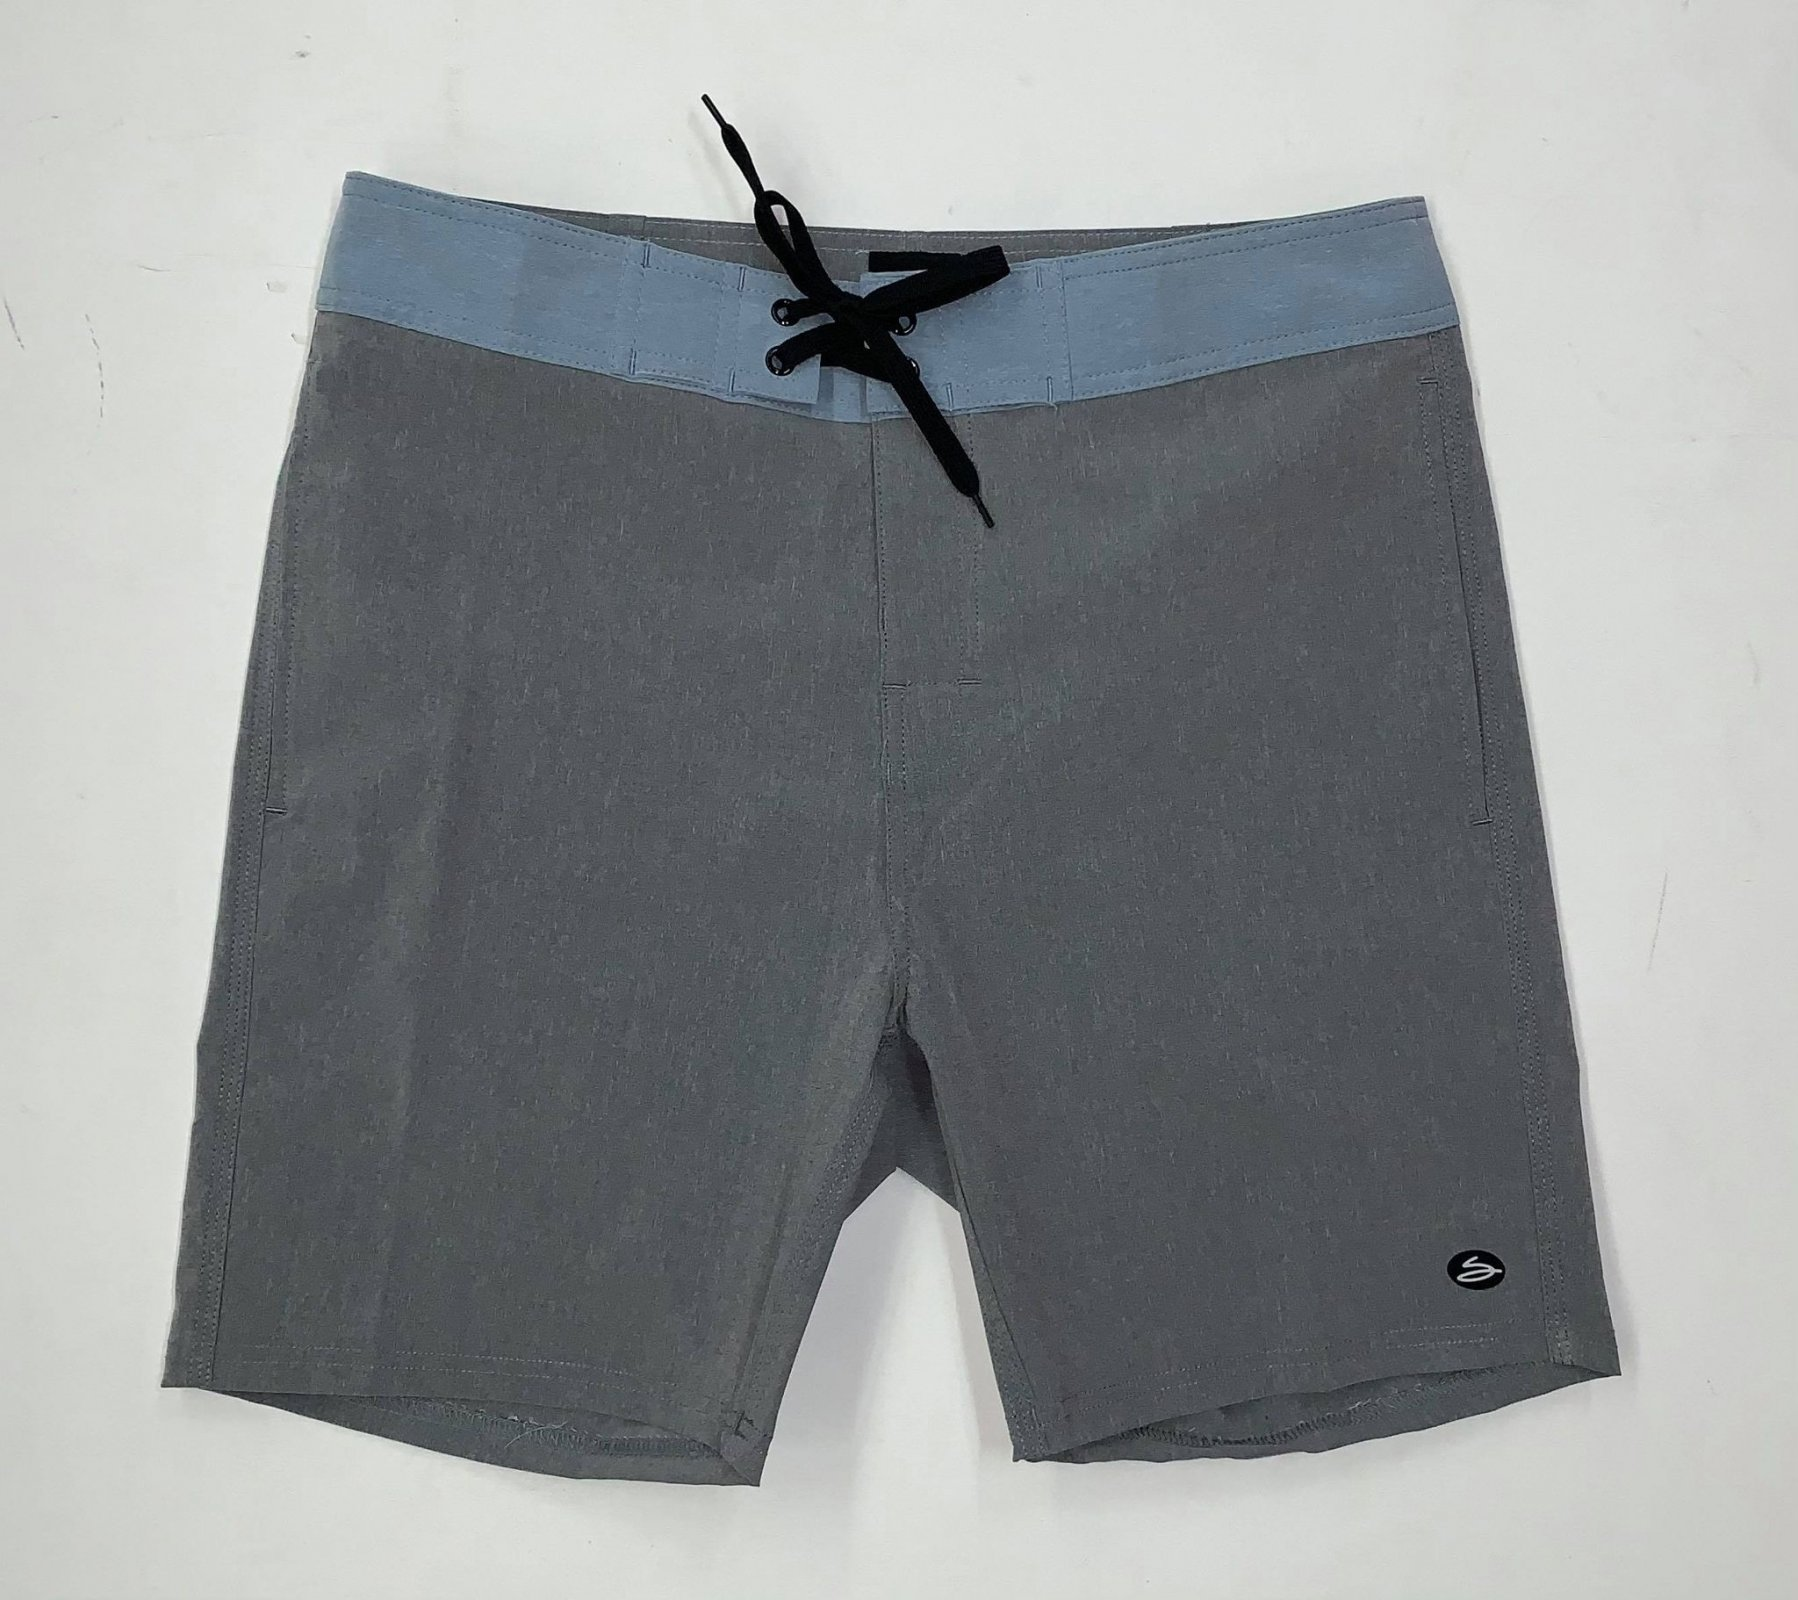 Salty's Brand Men's Endless Summer Boardshorts - Charcoal/Blue